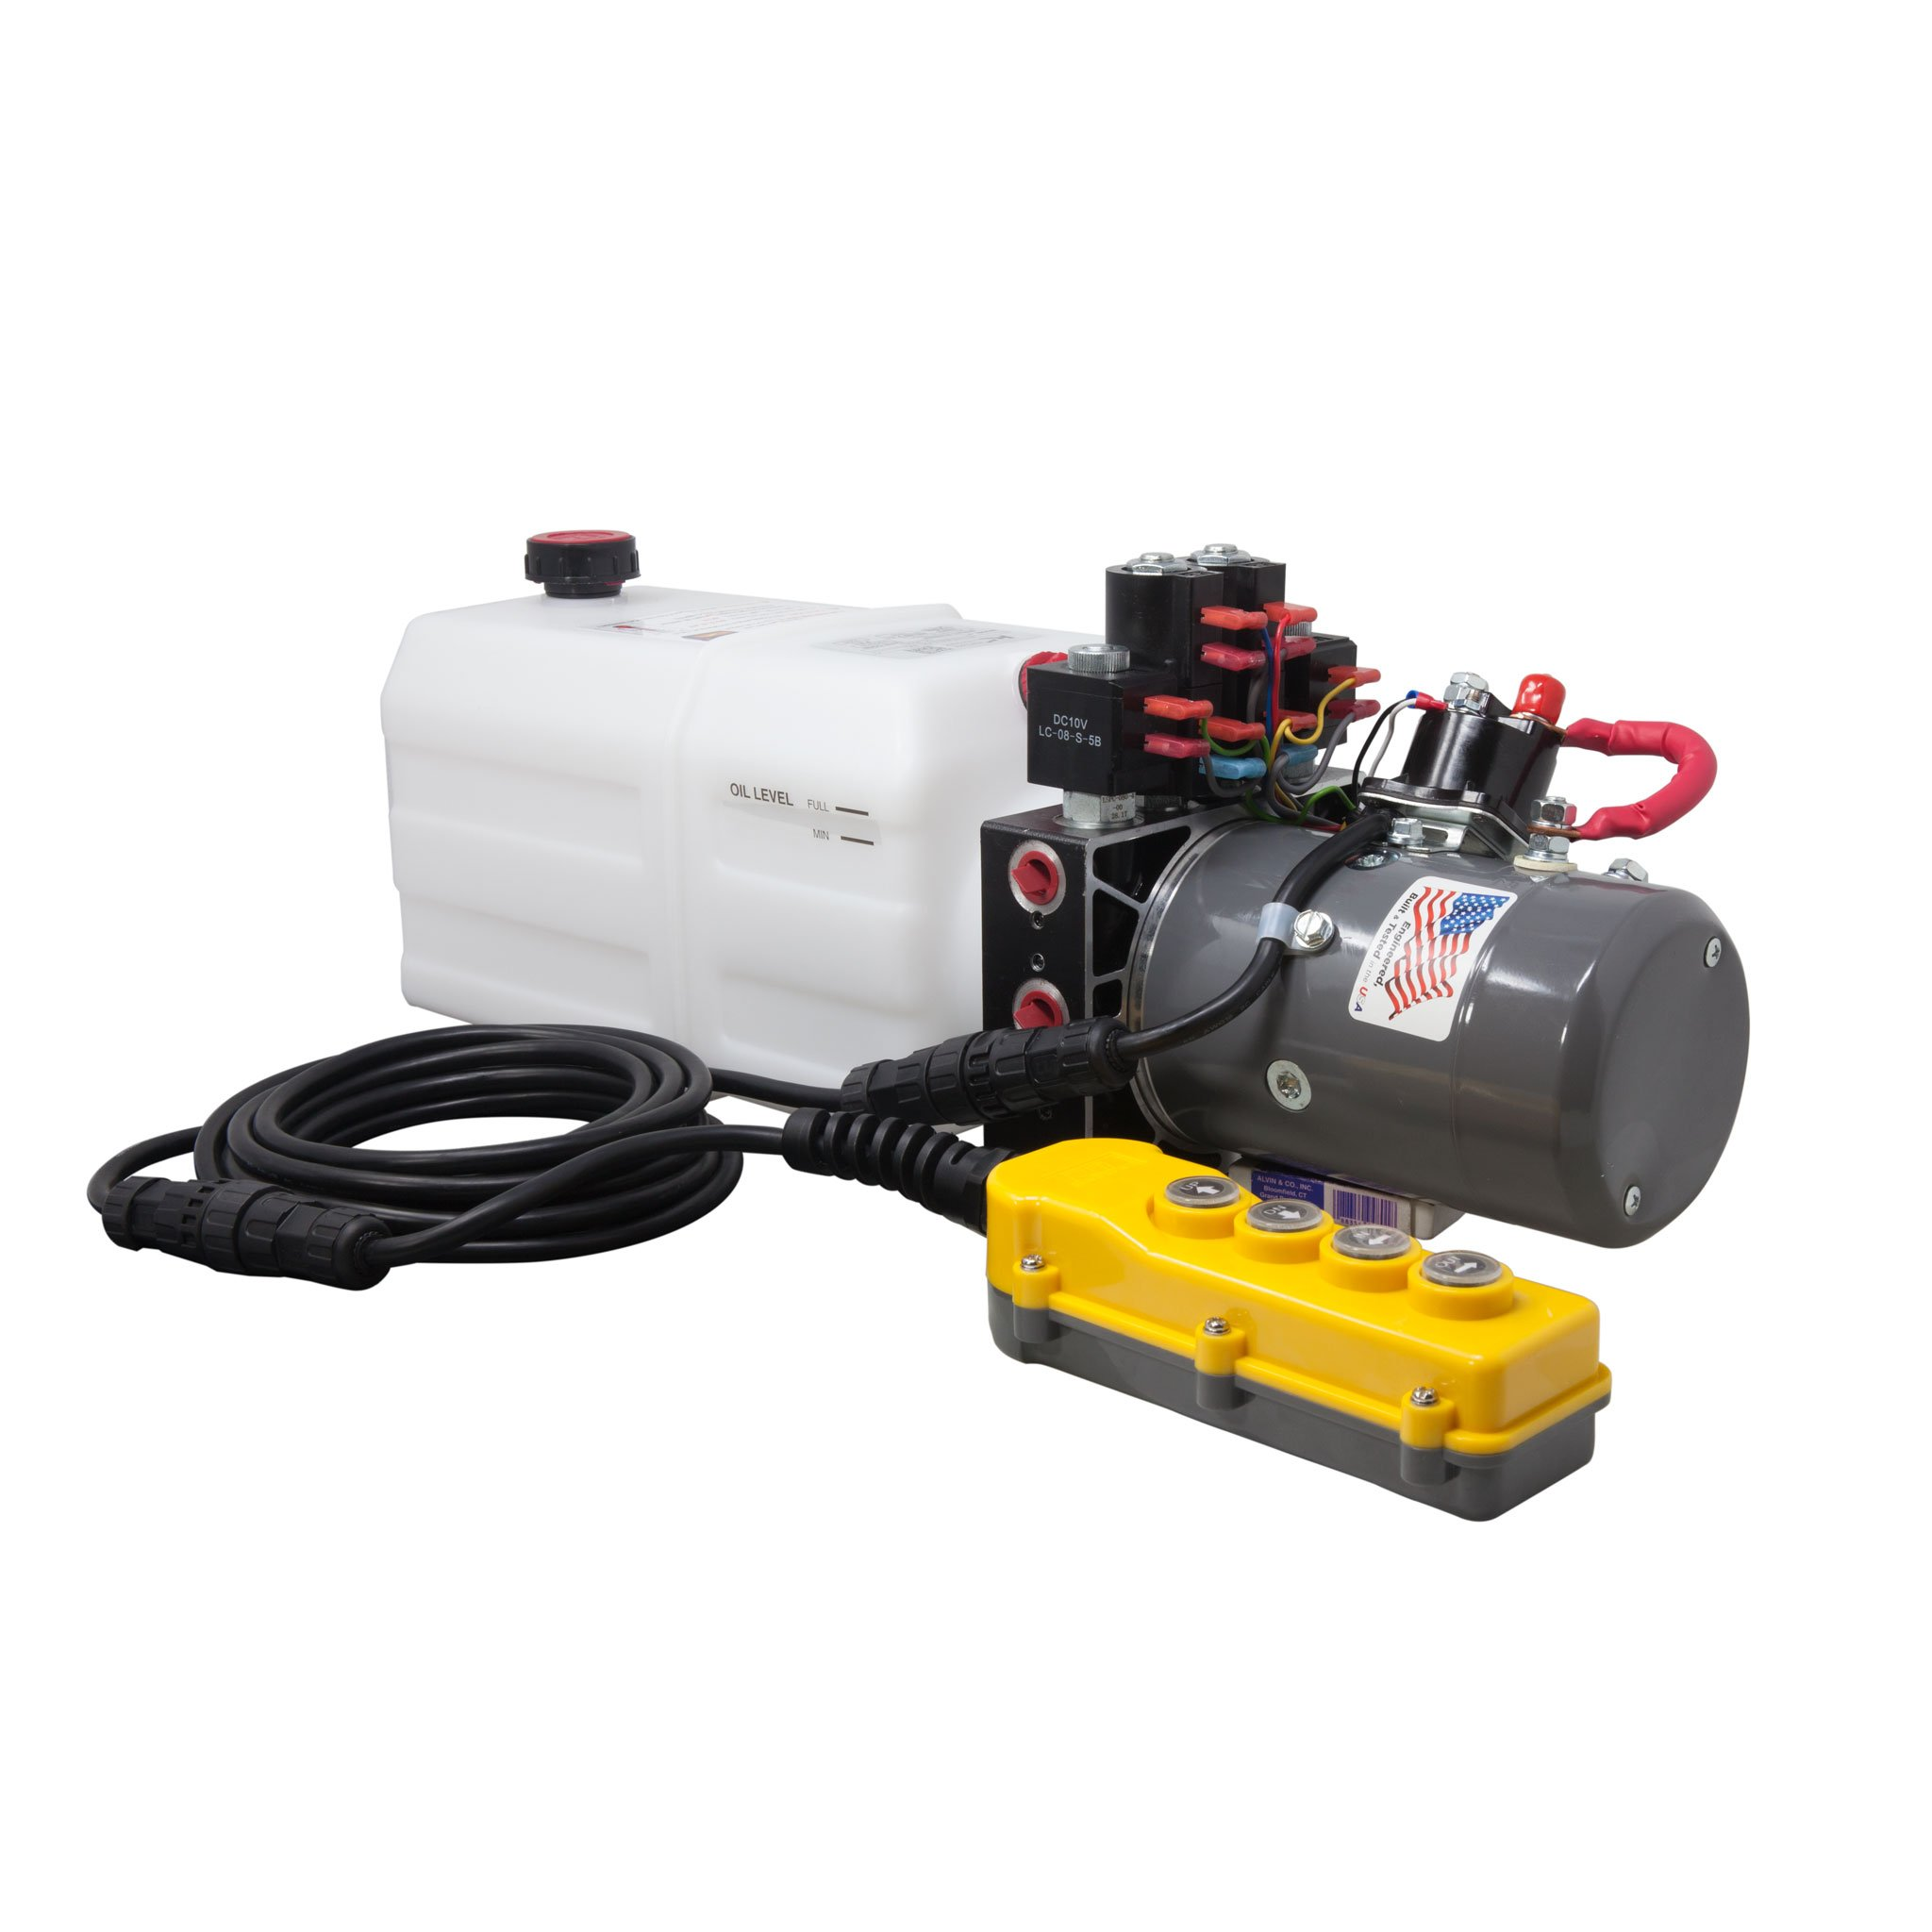 KTI Dual Double Acting 12V Hydraulic Pump - 6 Quart